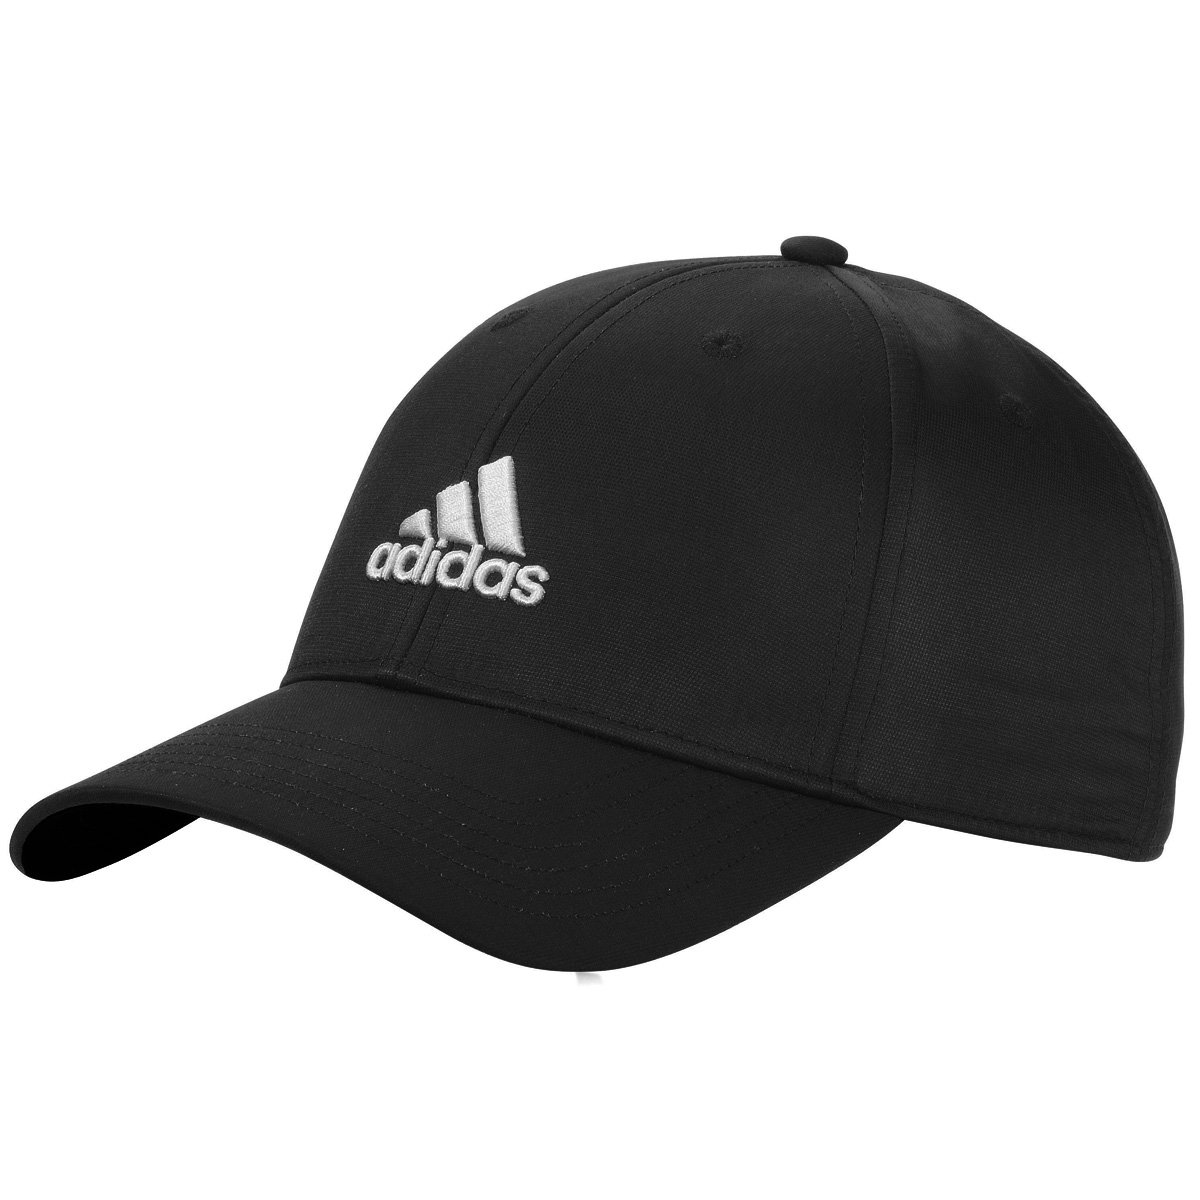 Adidas Performance Max Side Hit Relaxed Cap 2014 Unisex Black Unisex Black f07dde42ffad